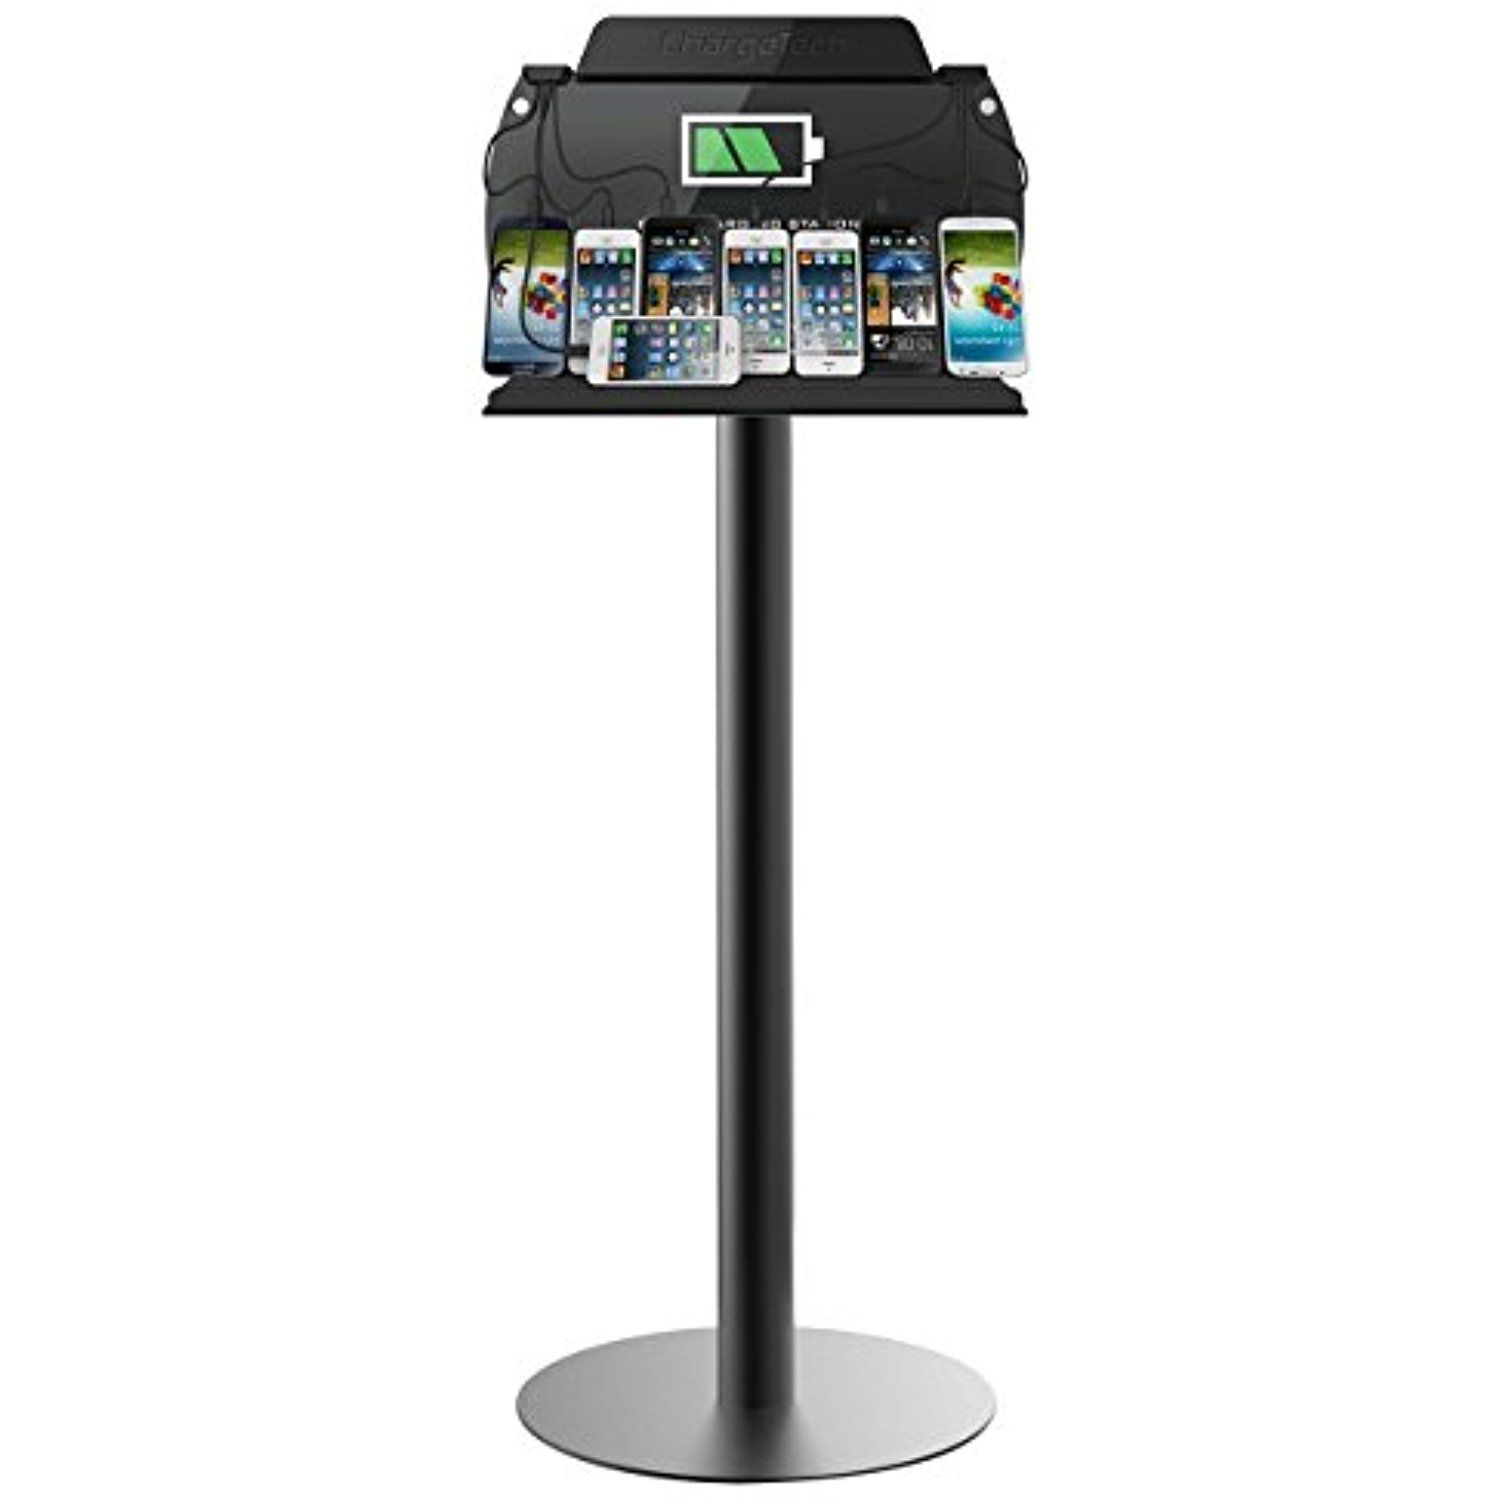 948cedf3616 ChargeTech - Tower Floor Stand Cell Phone Charging Station w ...